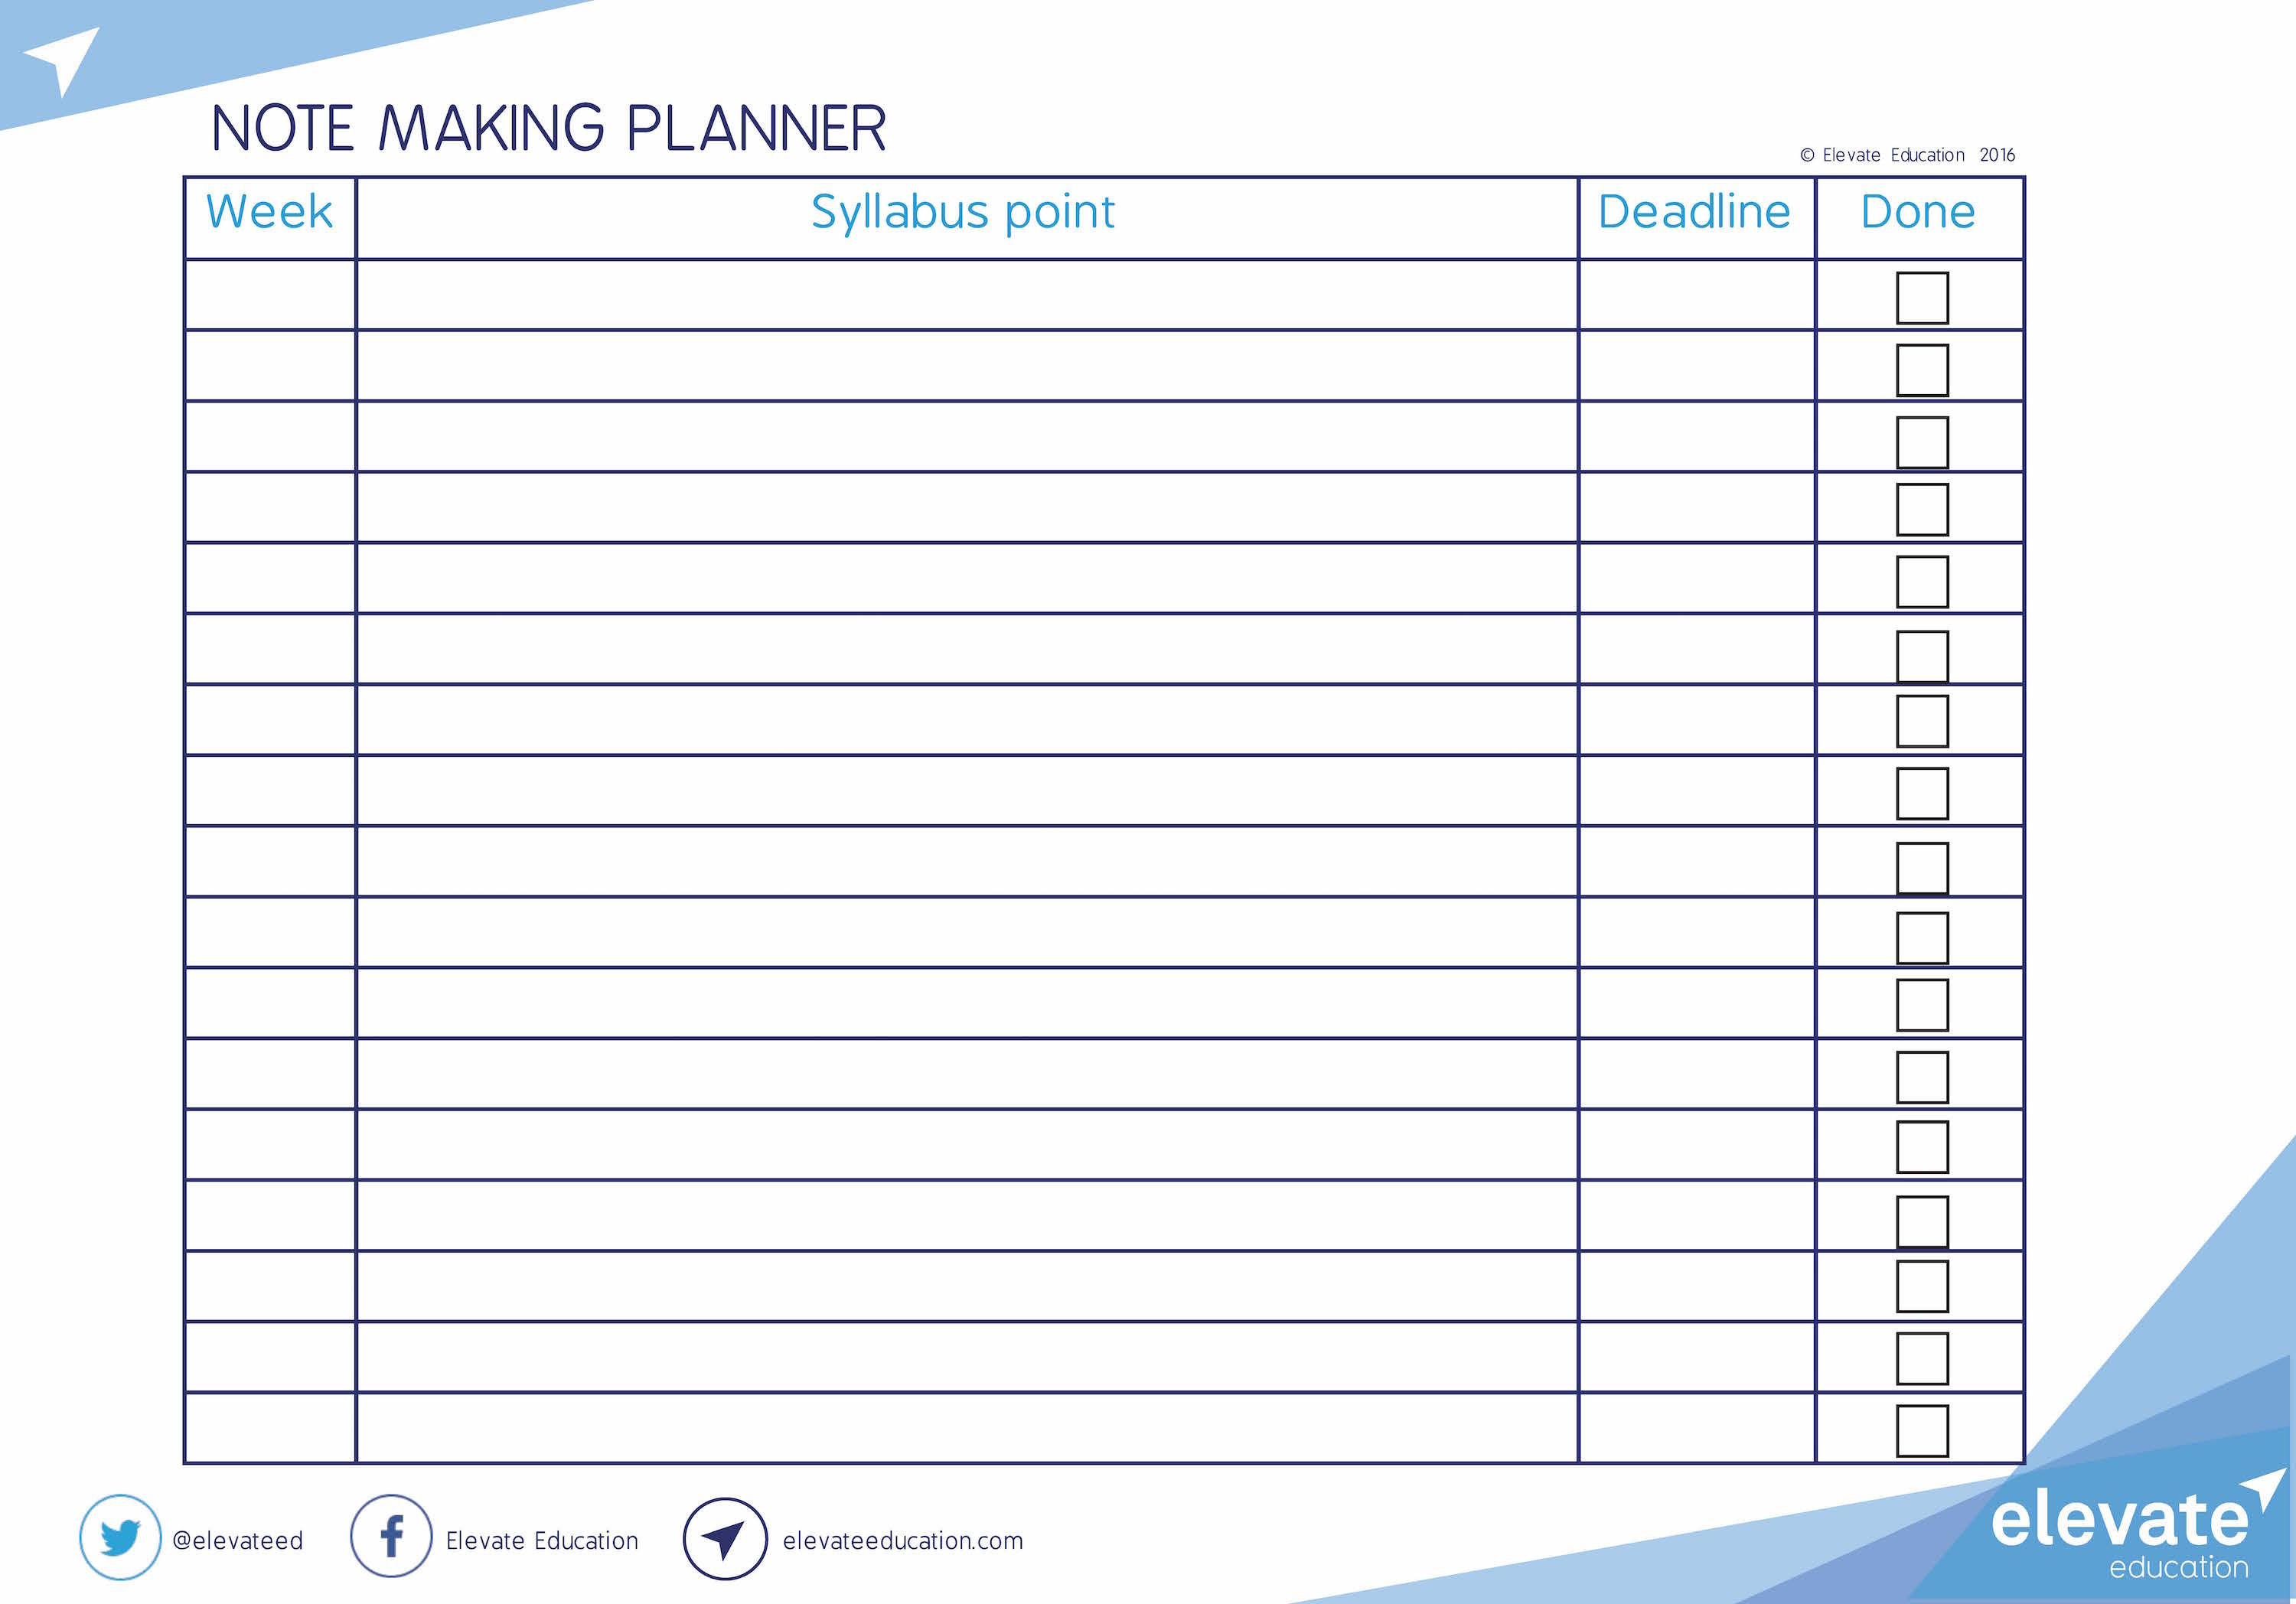 Note making planner